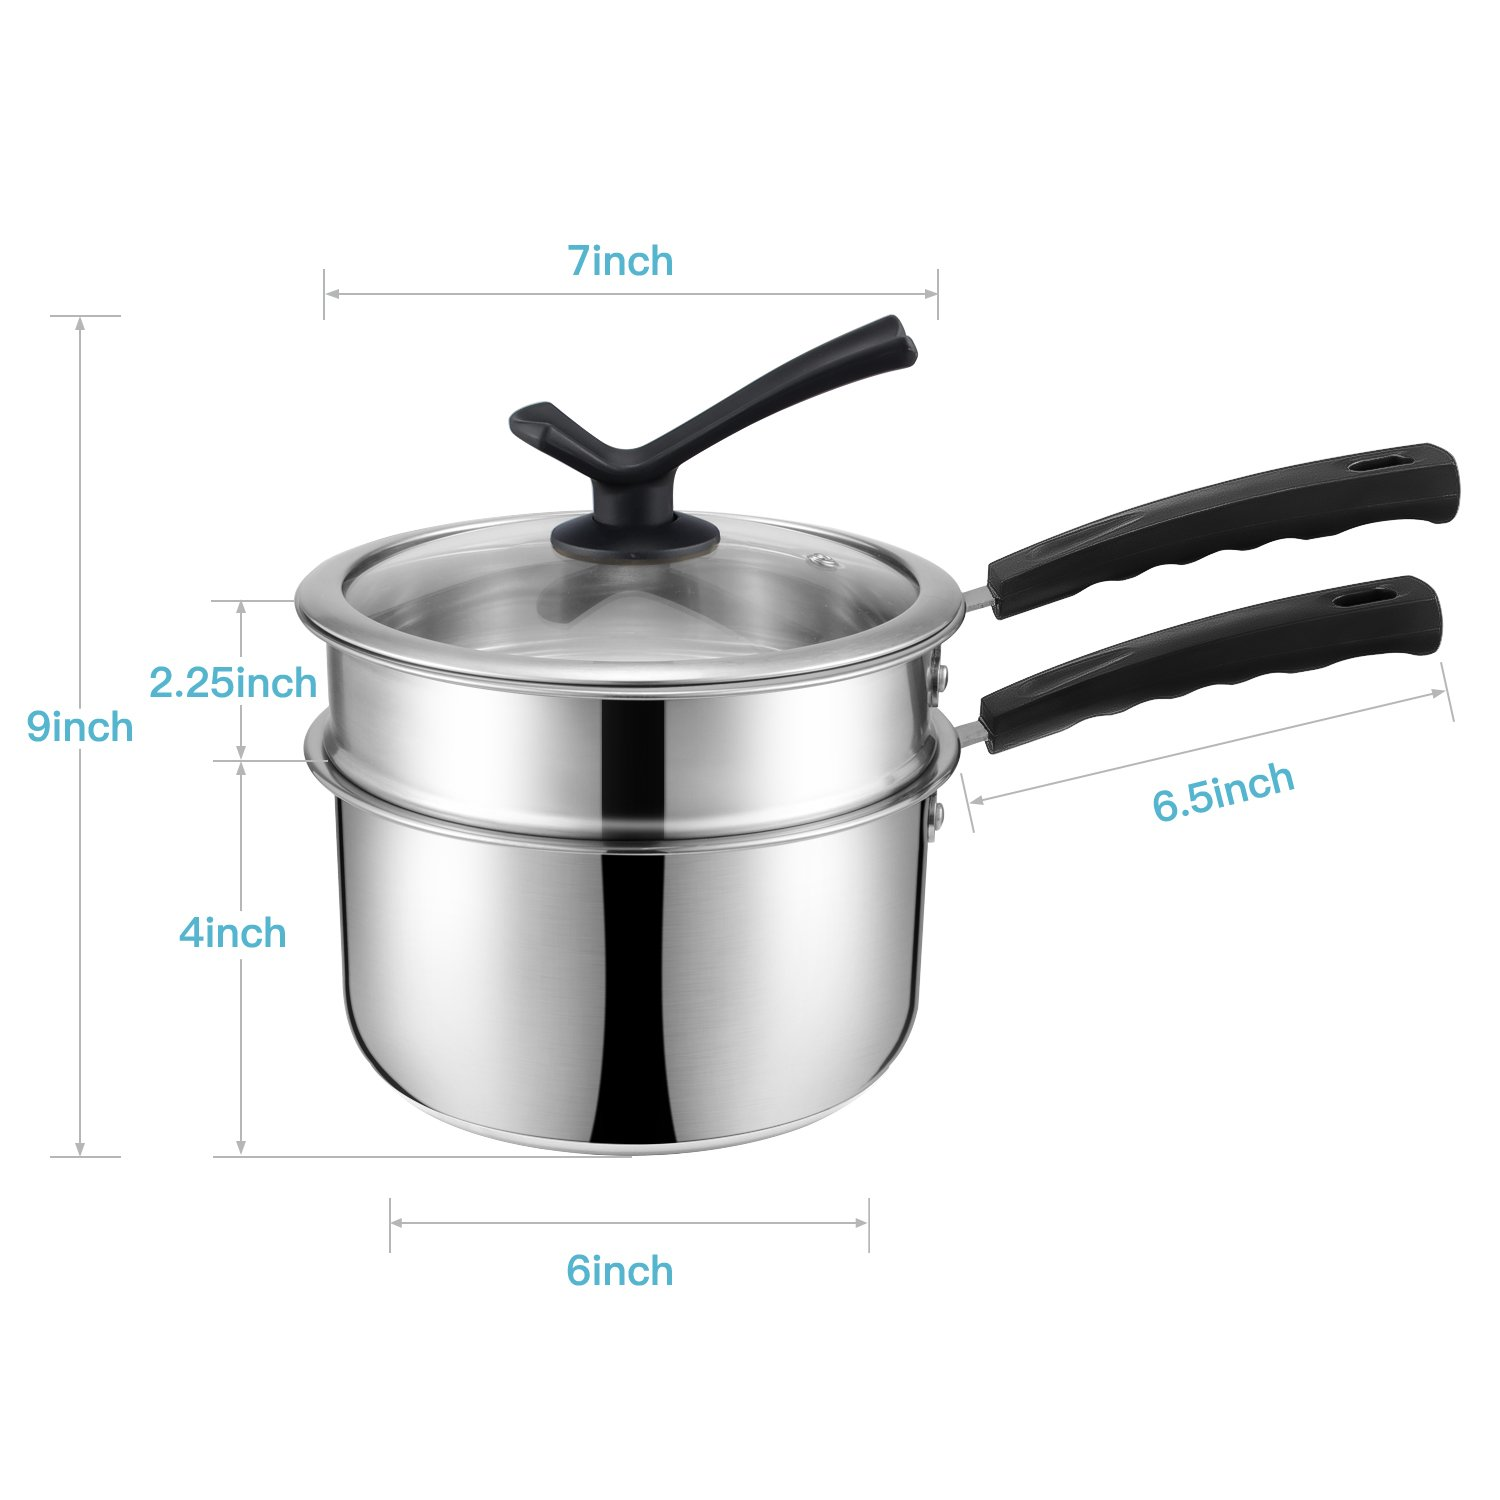 Double Boiler&Classic Stainless Steel Non-Stick Saucepan,Melting Pot for Butter,Chocolate,Cheese,Caramel and Bonus with Tempered Glass Lid by JKsmart (Image #2)